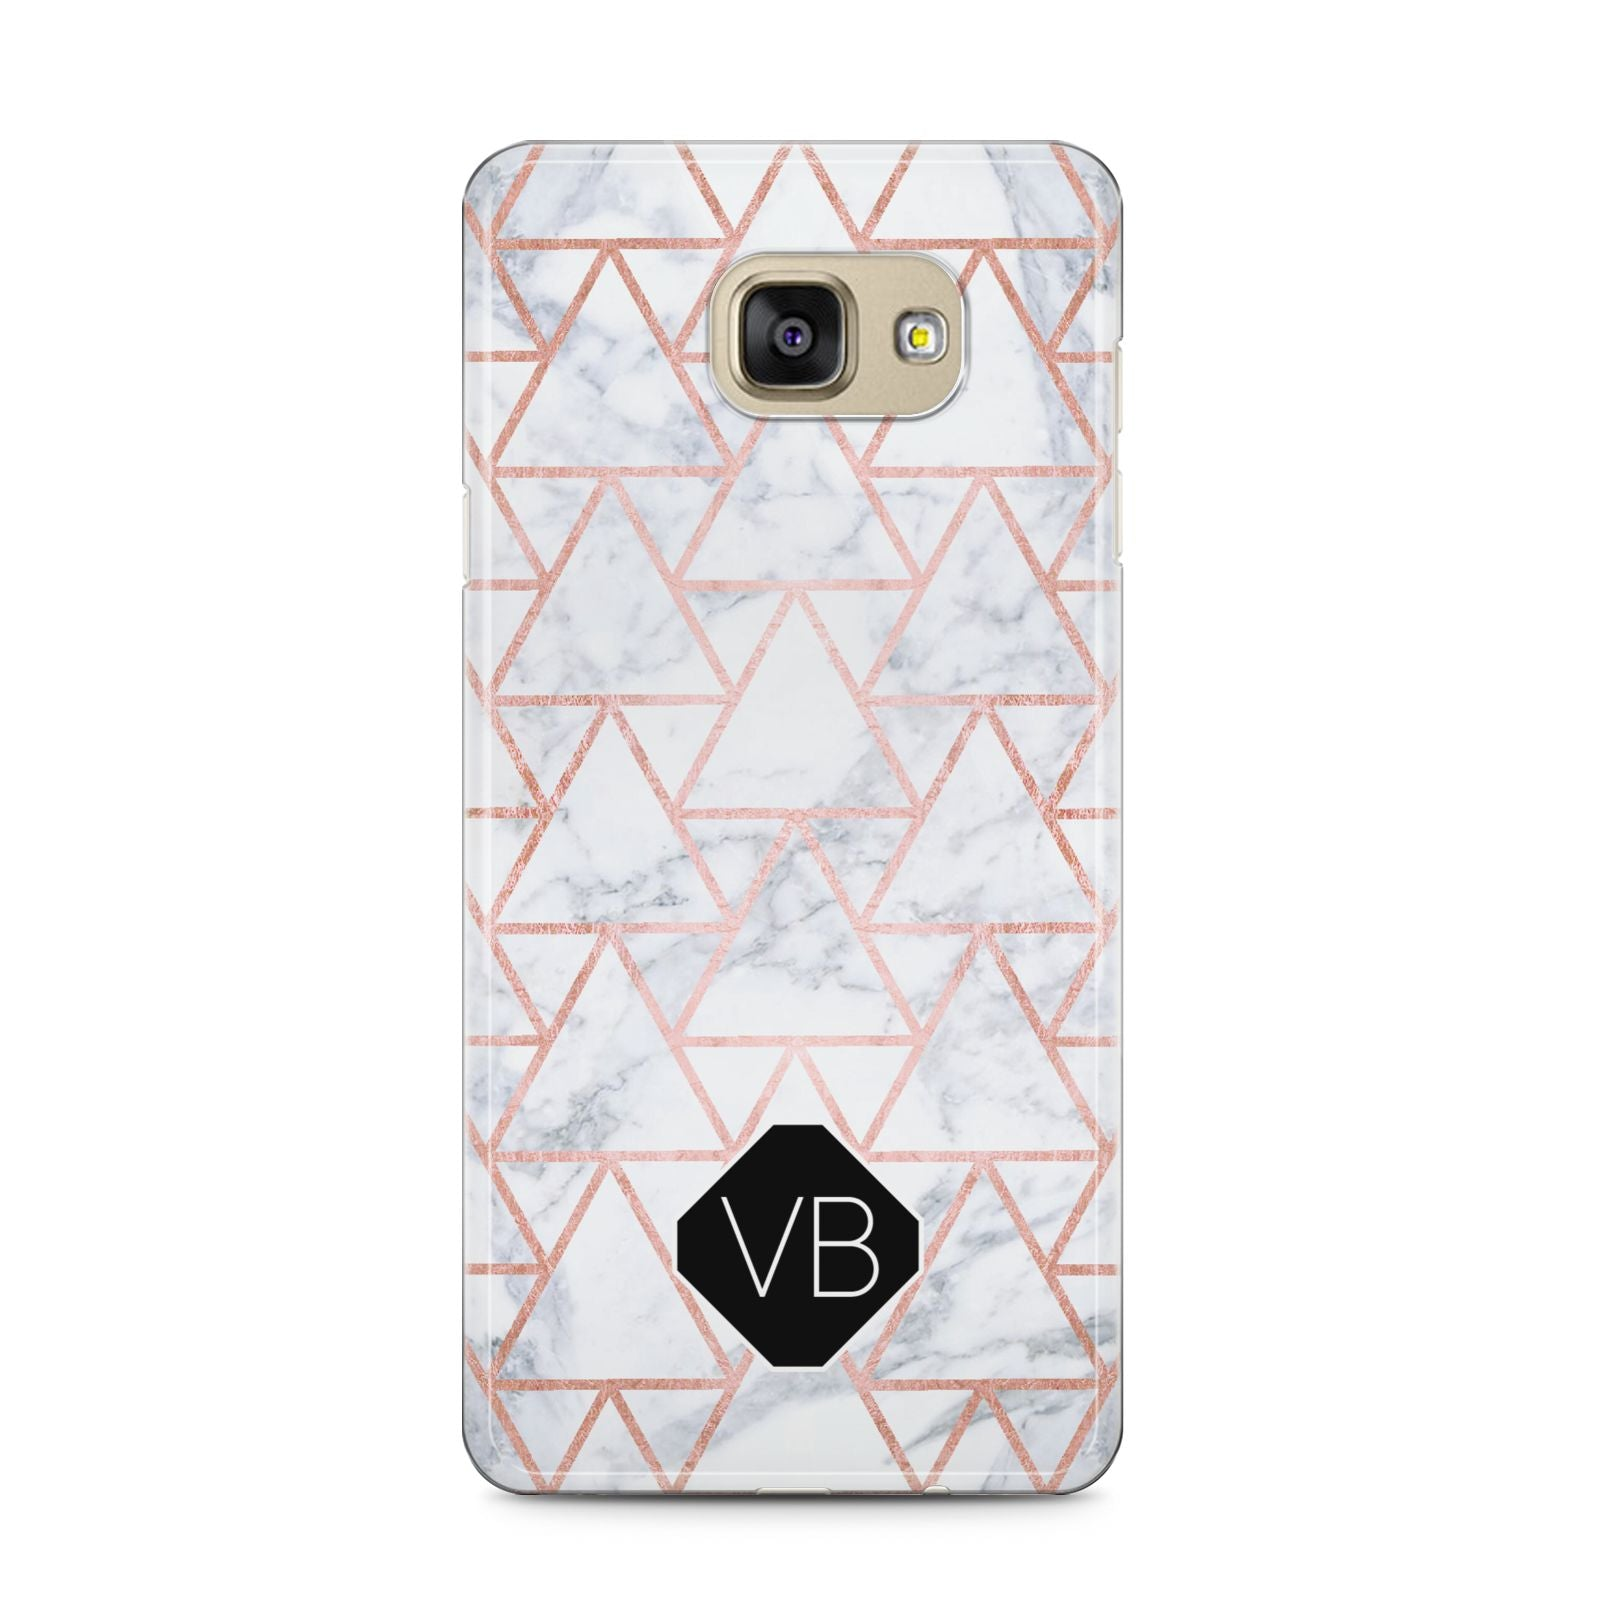 Personalised Rose Gold Grey Marble Hexagon Samsung Galaxy A5 2016 Case on gold phone